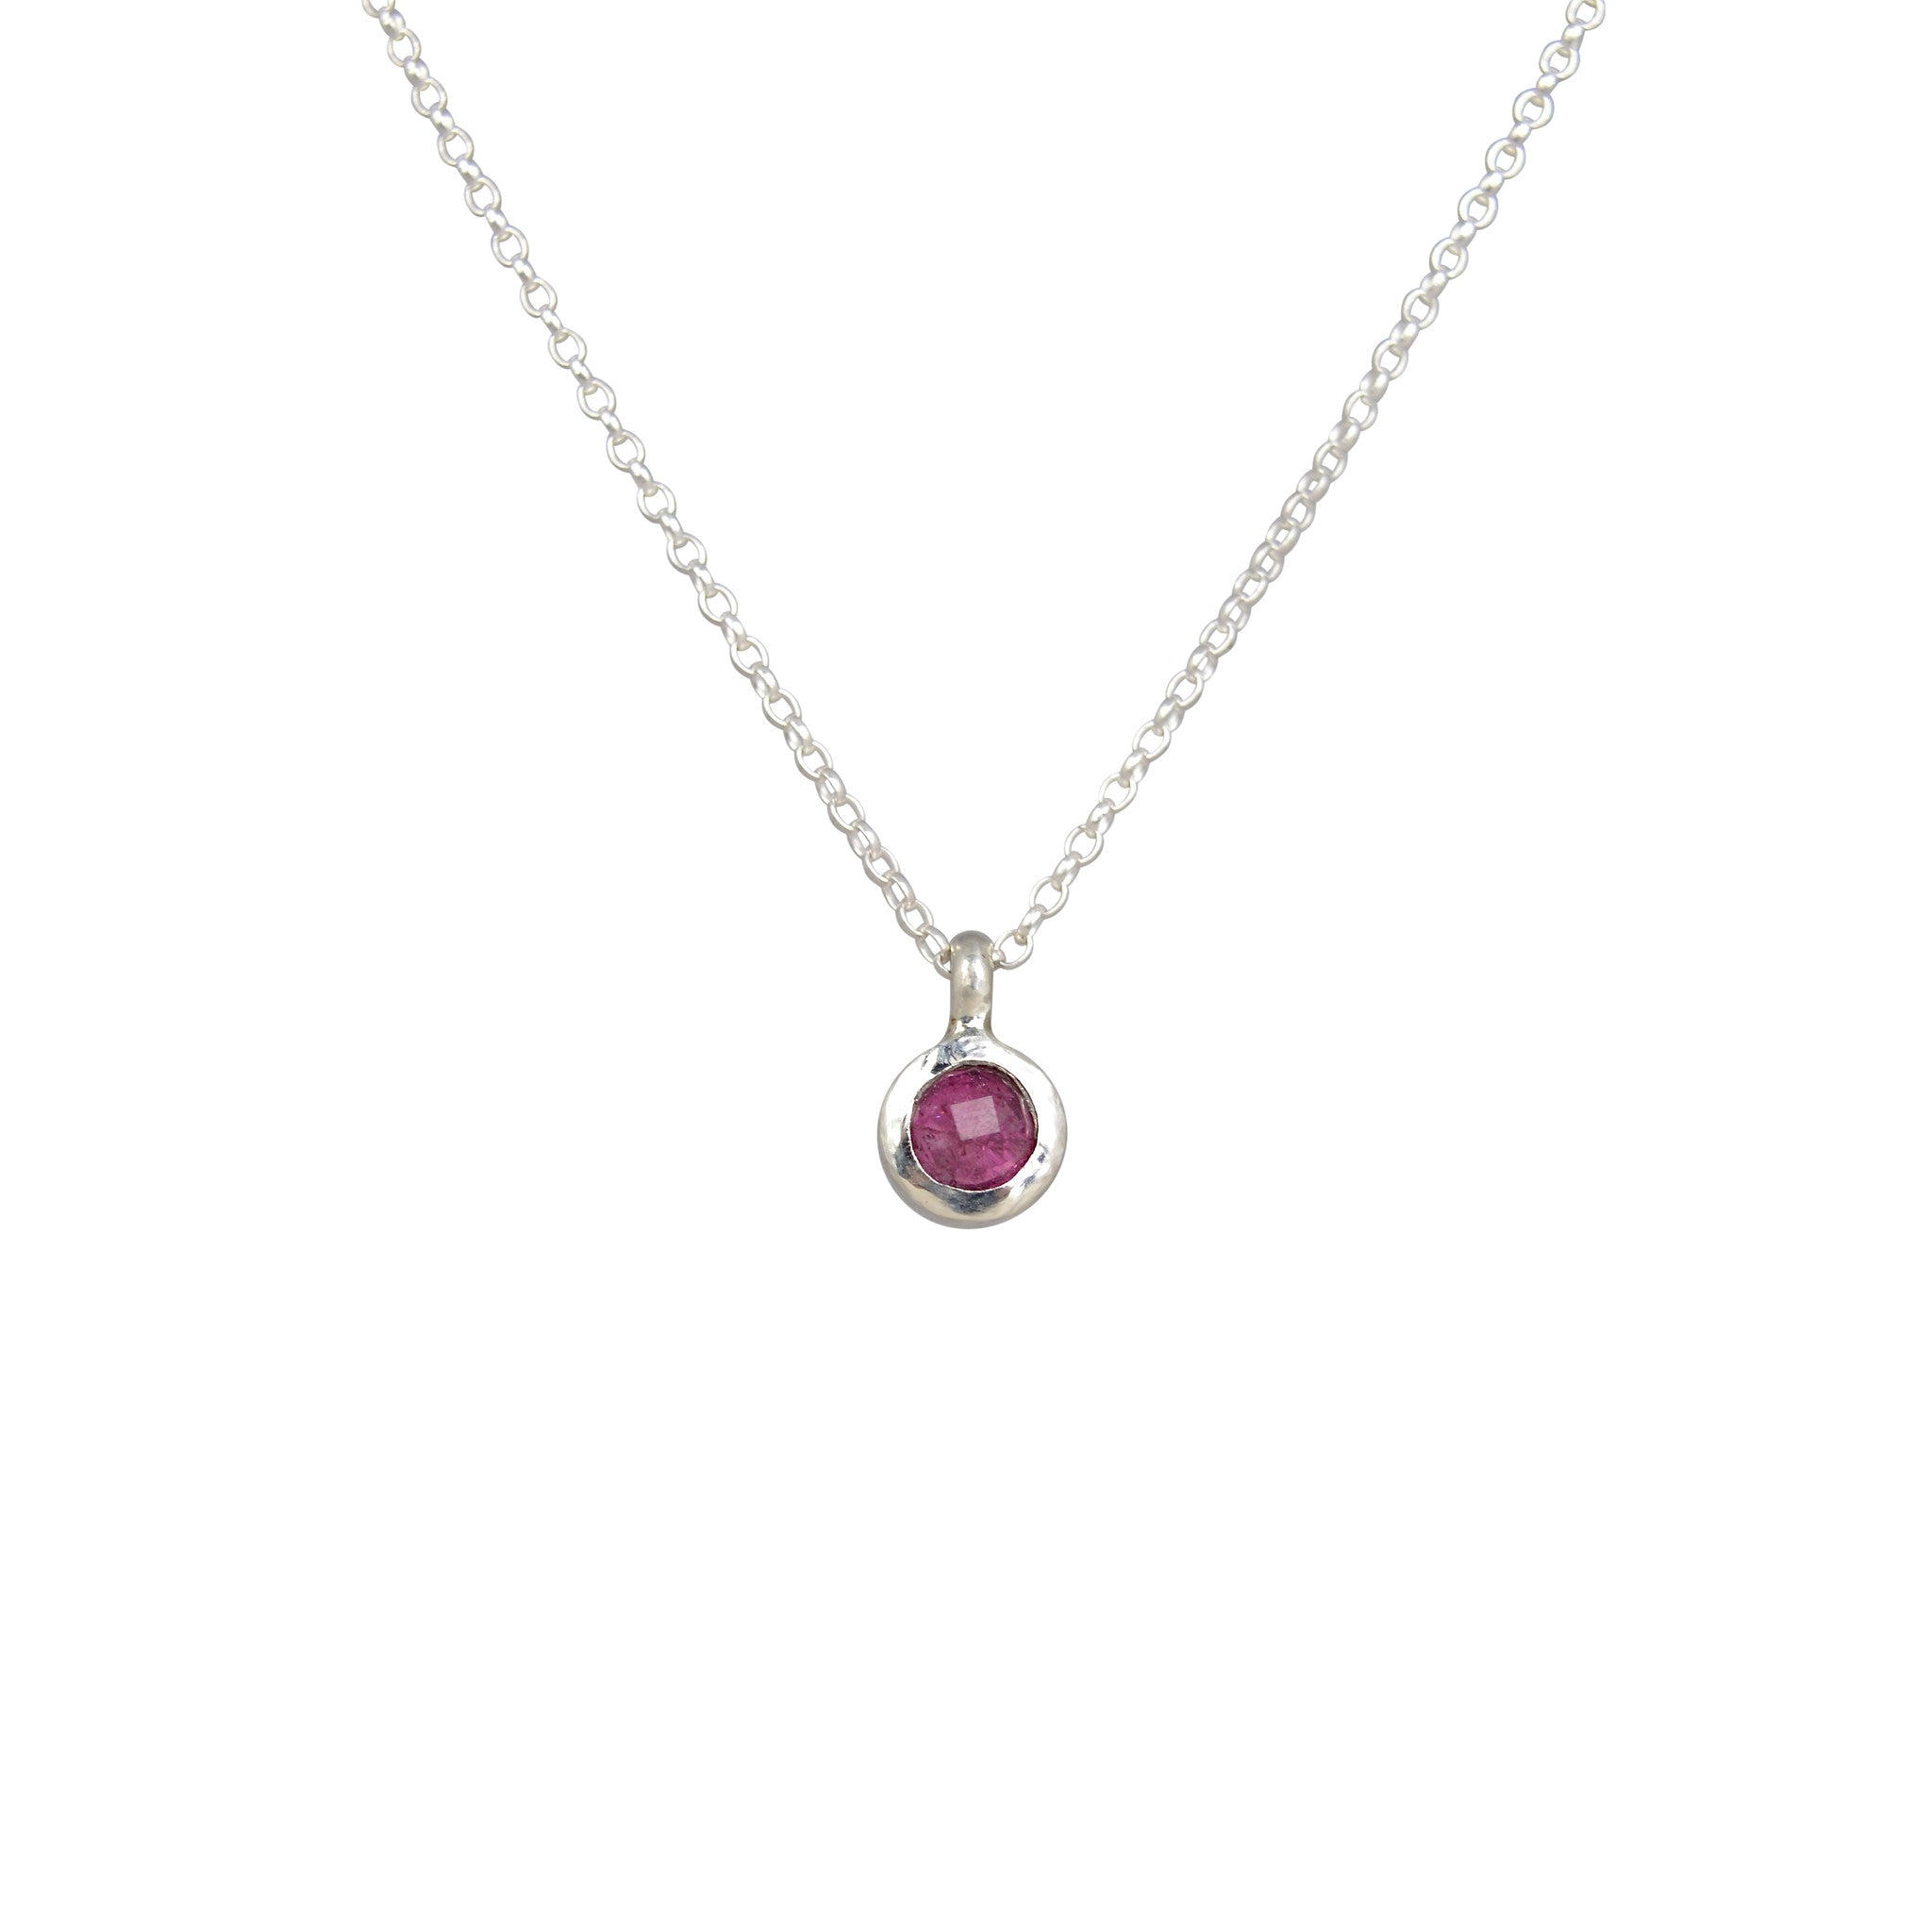 tourmaline julia pendant george irregular pink shape necklace products collections lloyd by